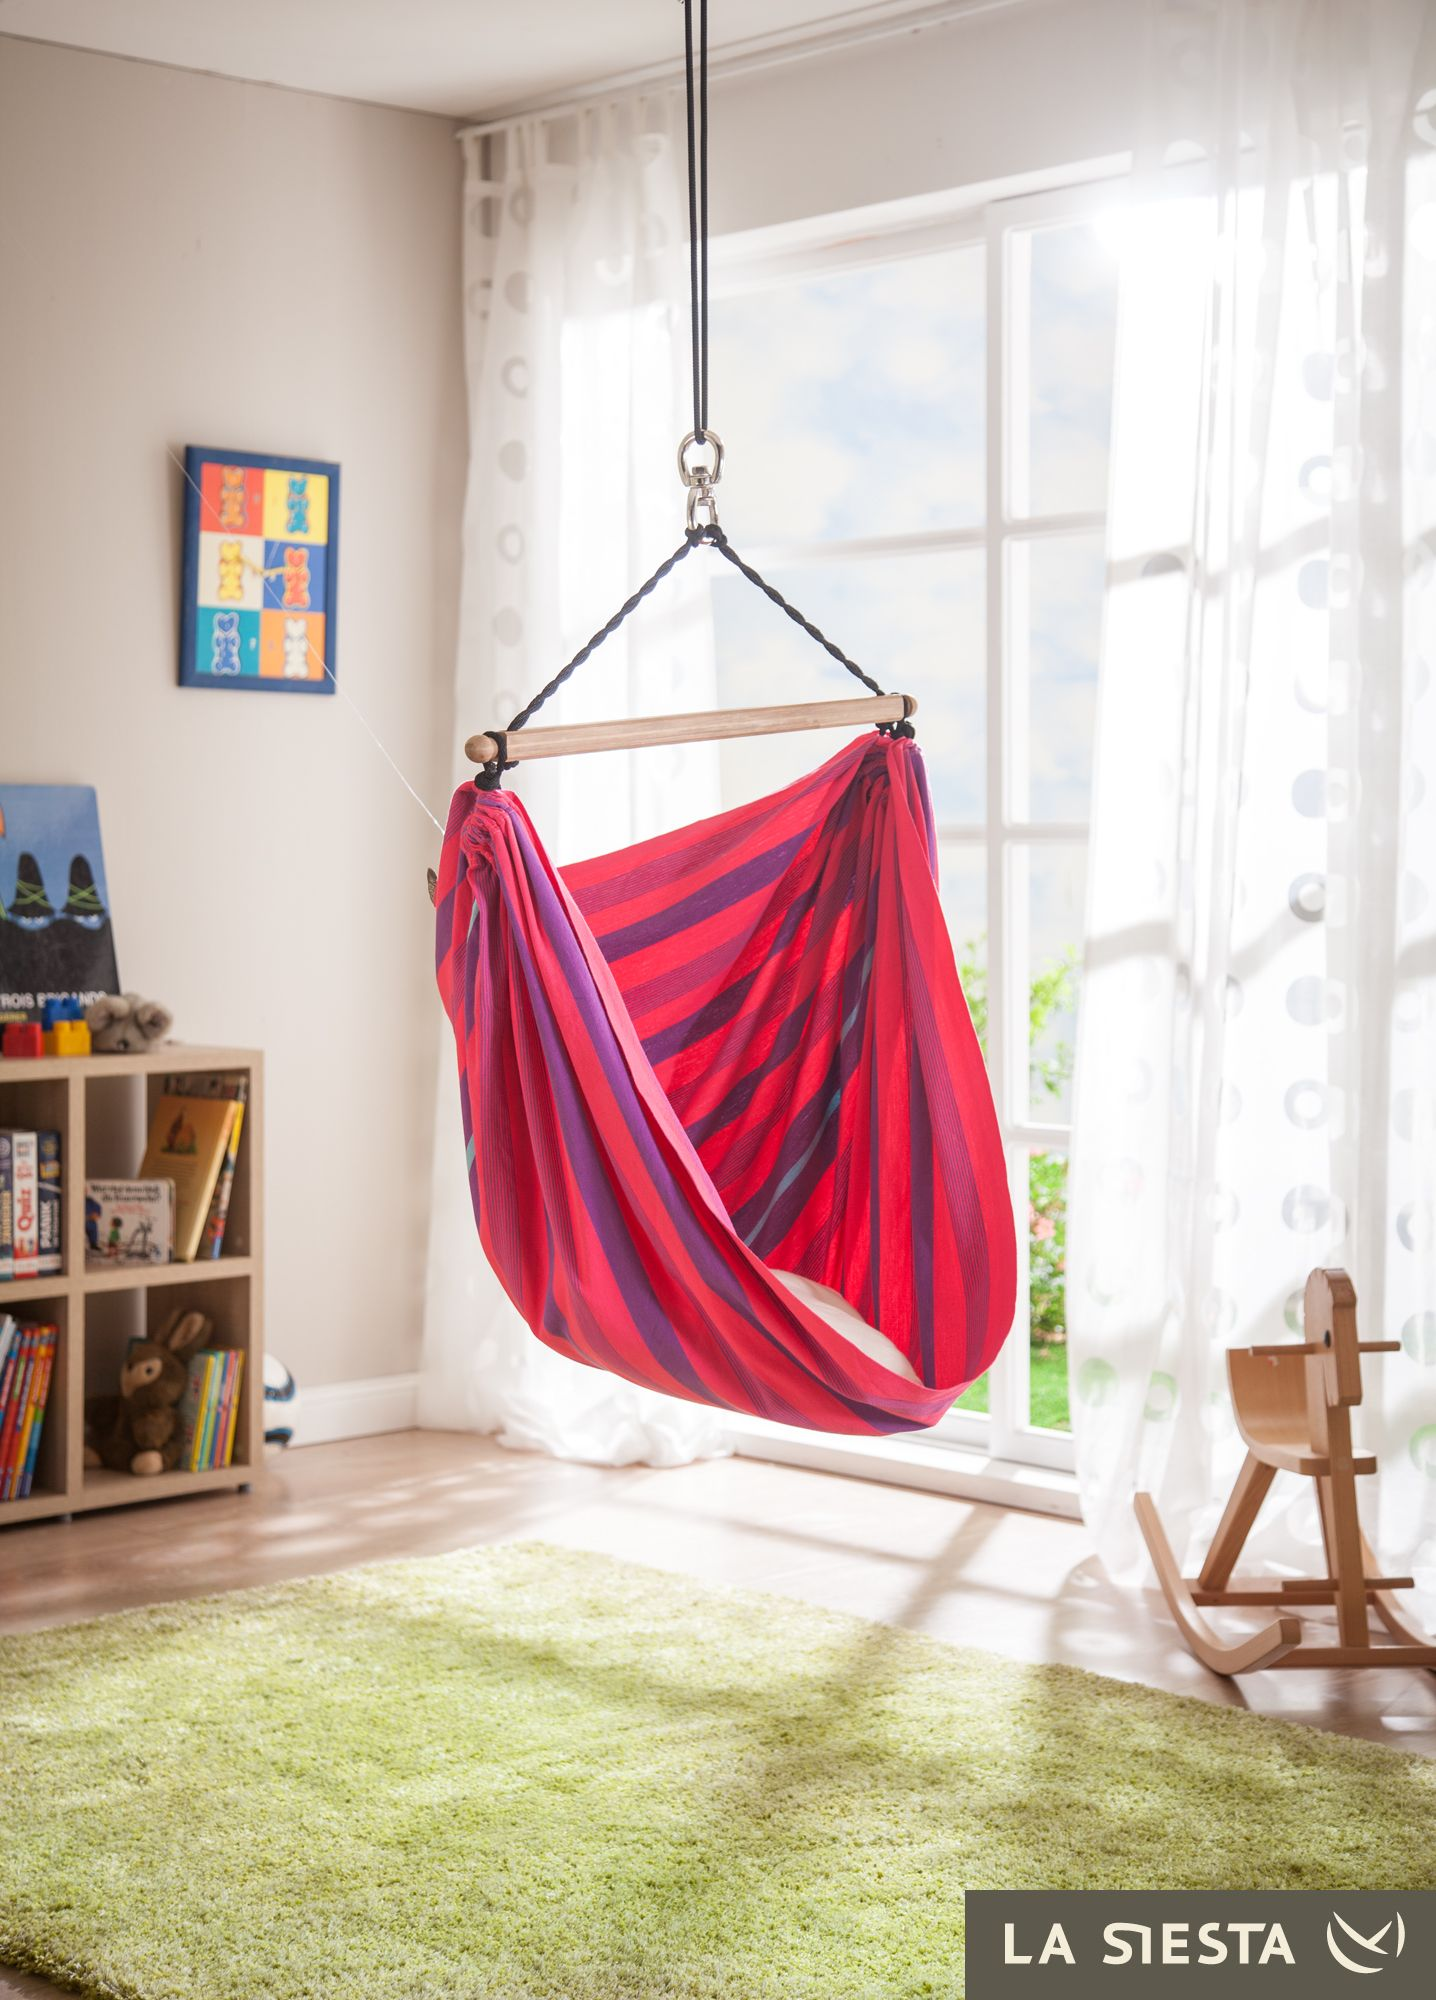 Swell Marvelous Dimgrey Hanging Swing Plans Indoor Hammock Chair Bralicious Painted Fabric Chair Ideas Braliciousco